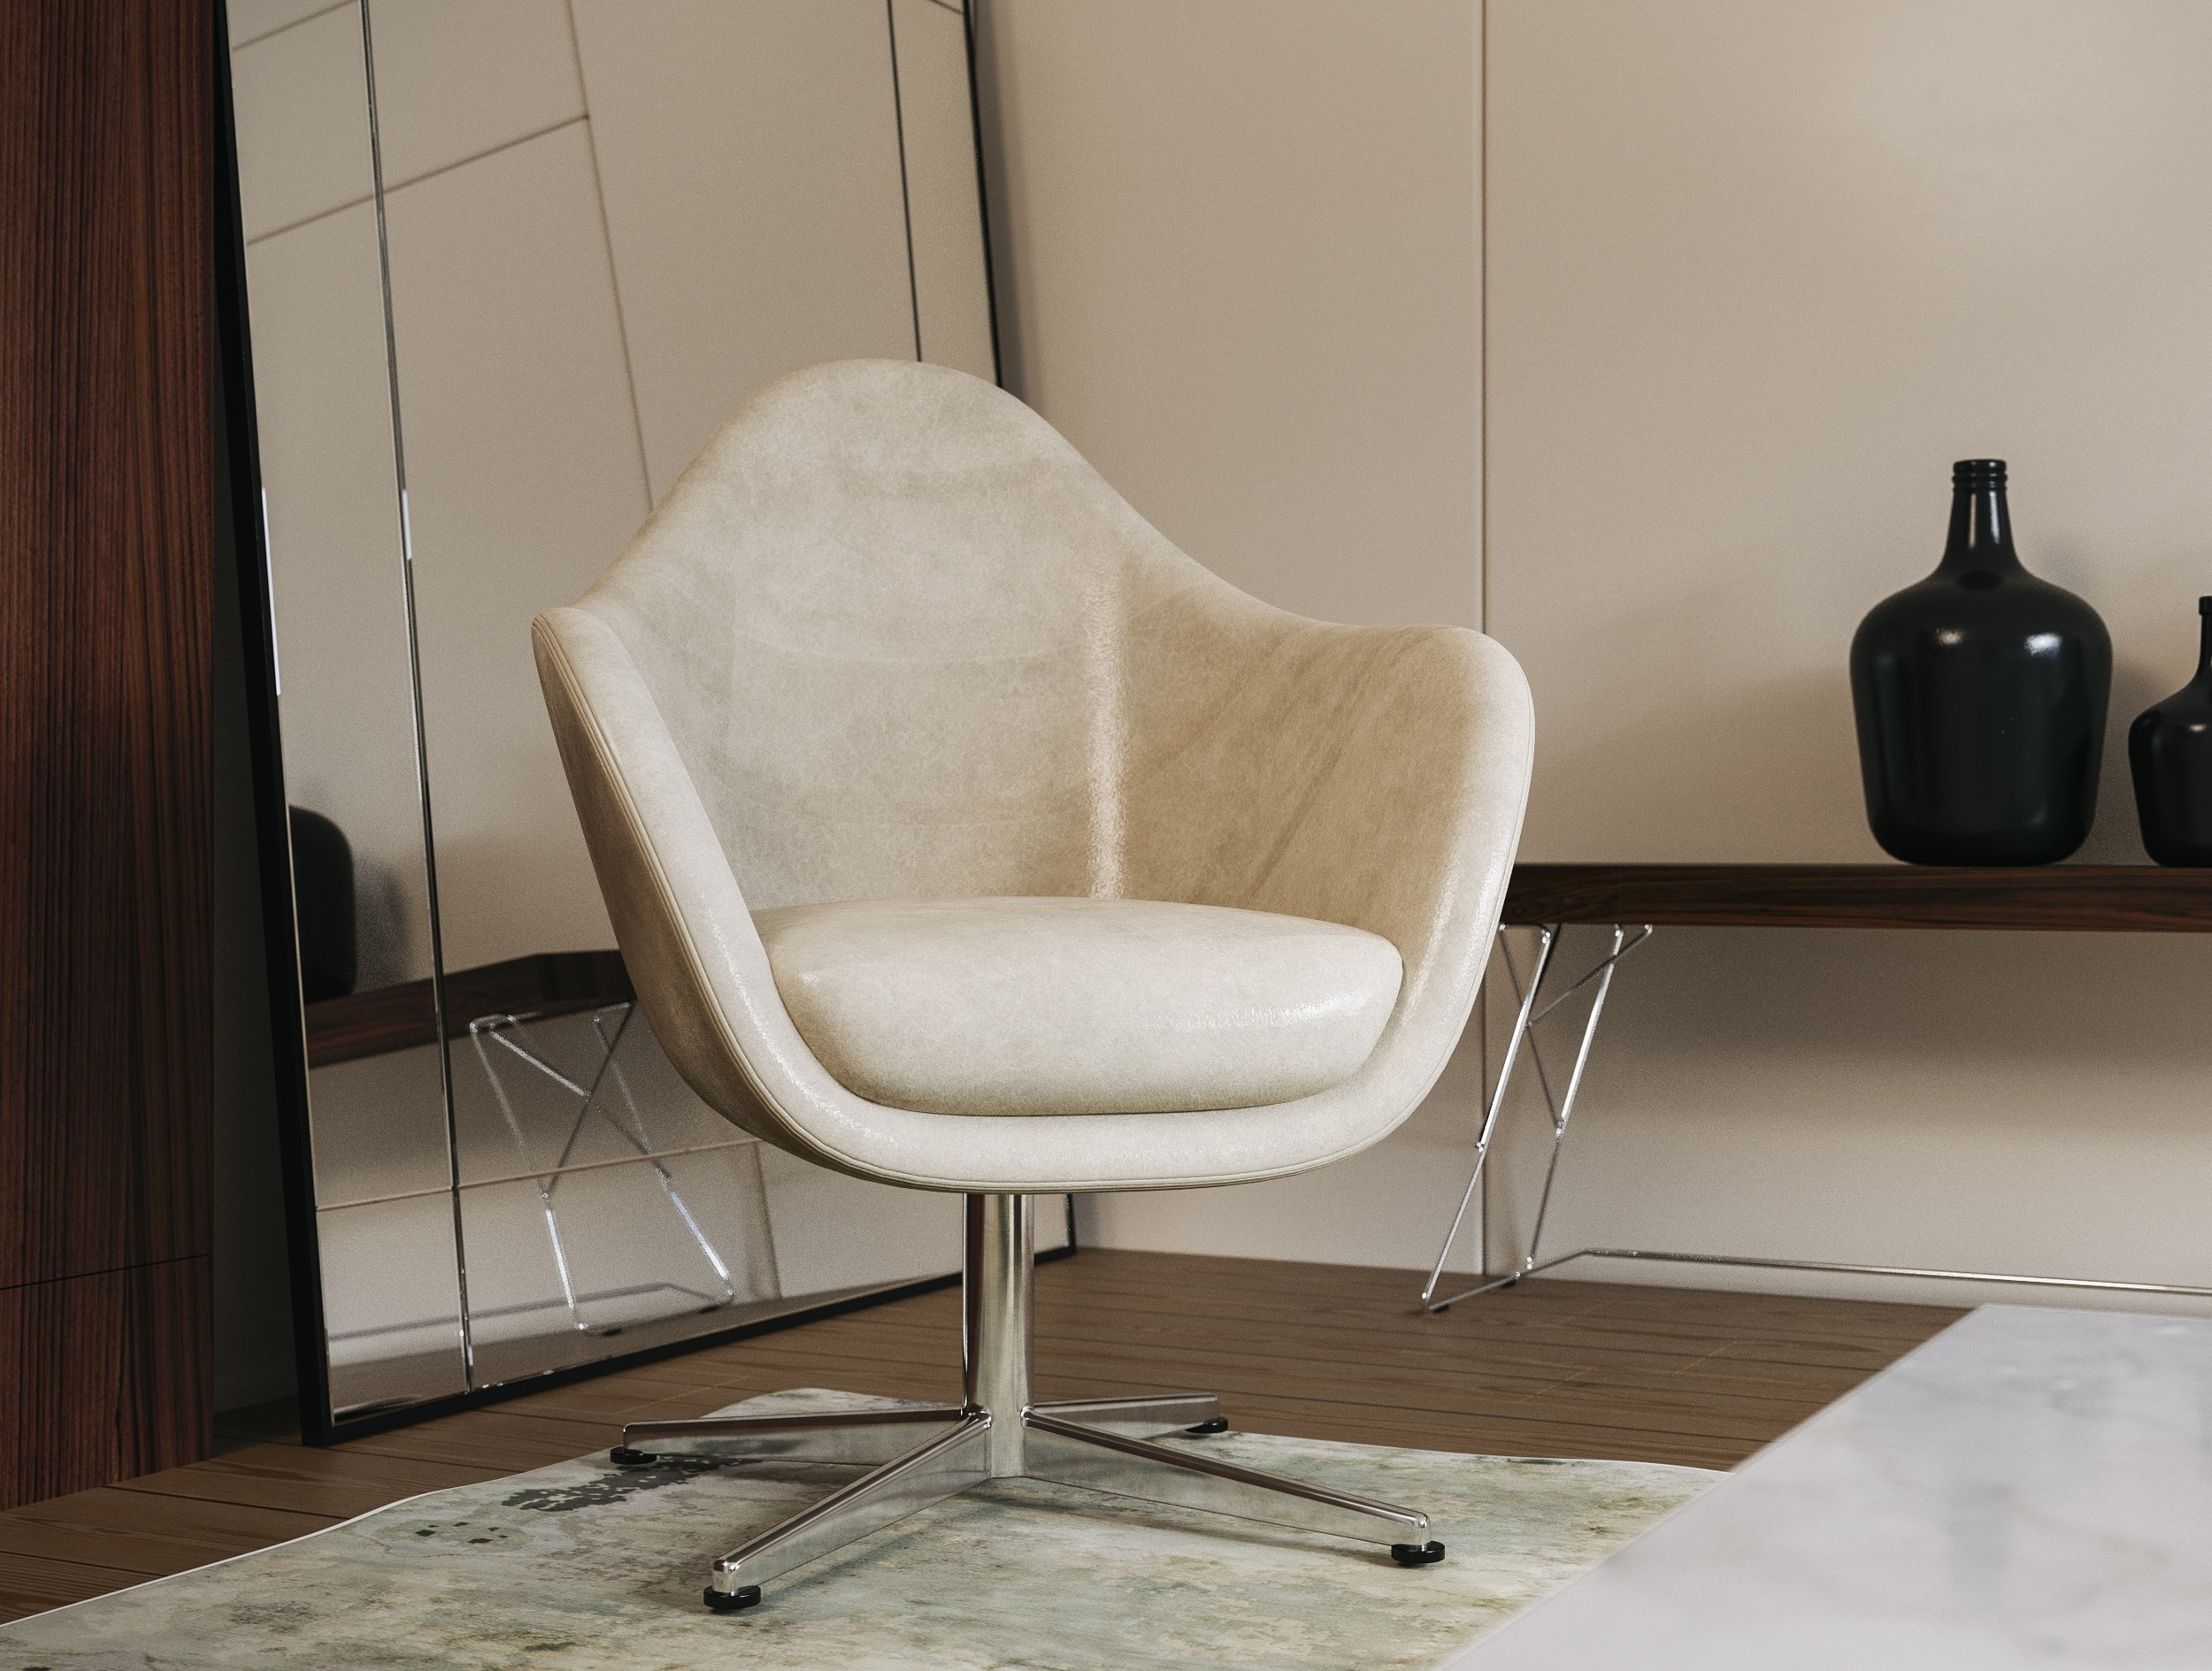 leather chair in front of mosaic mirror